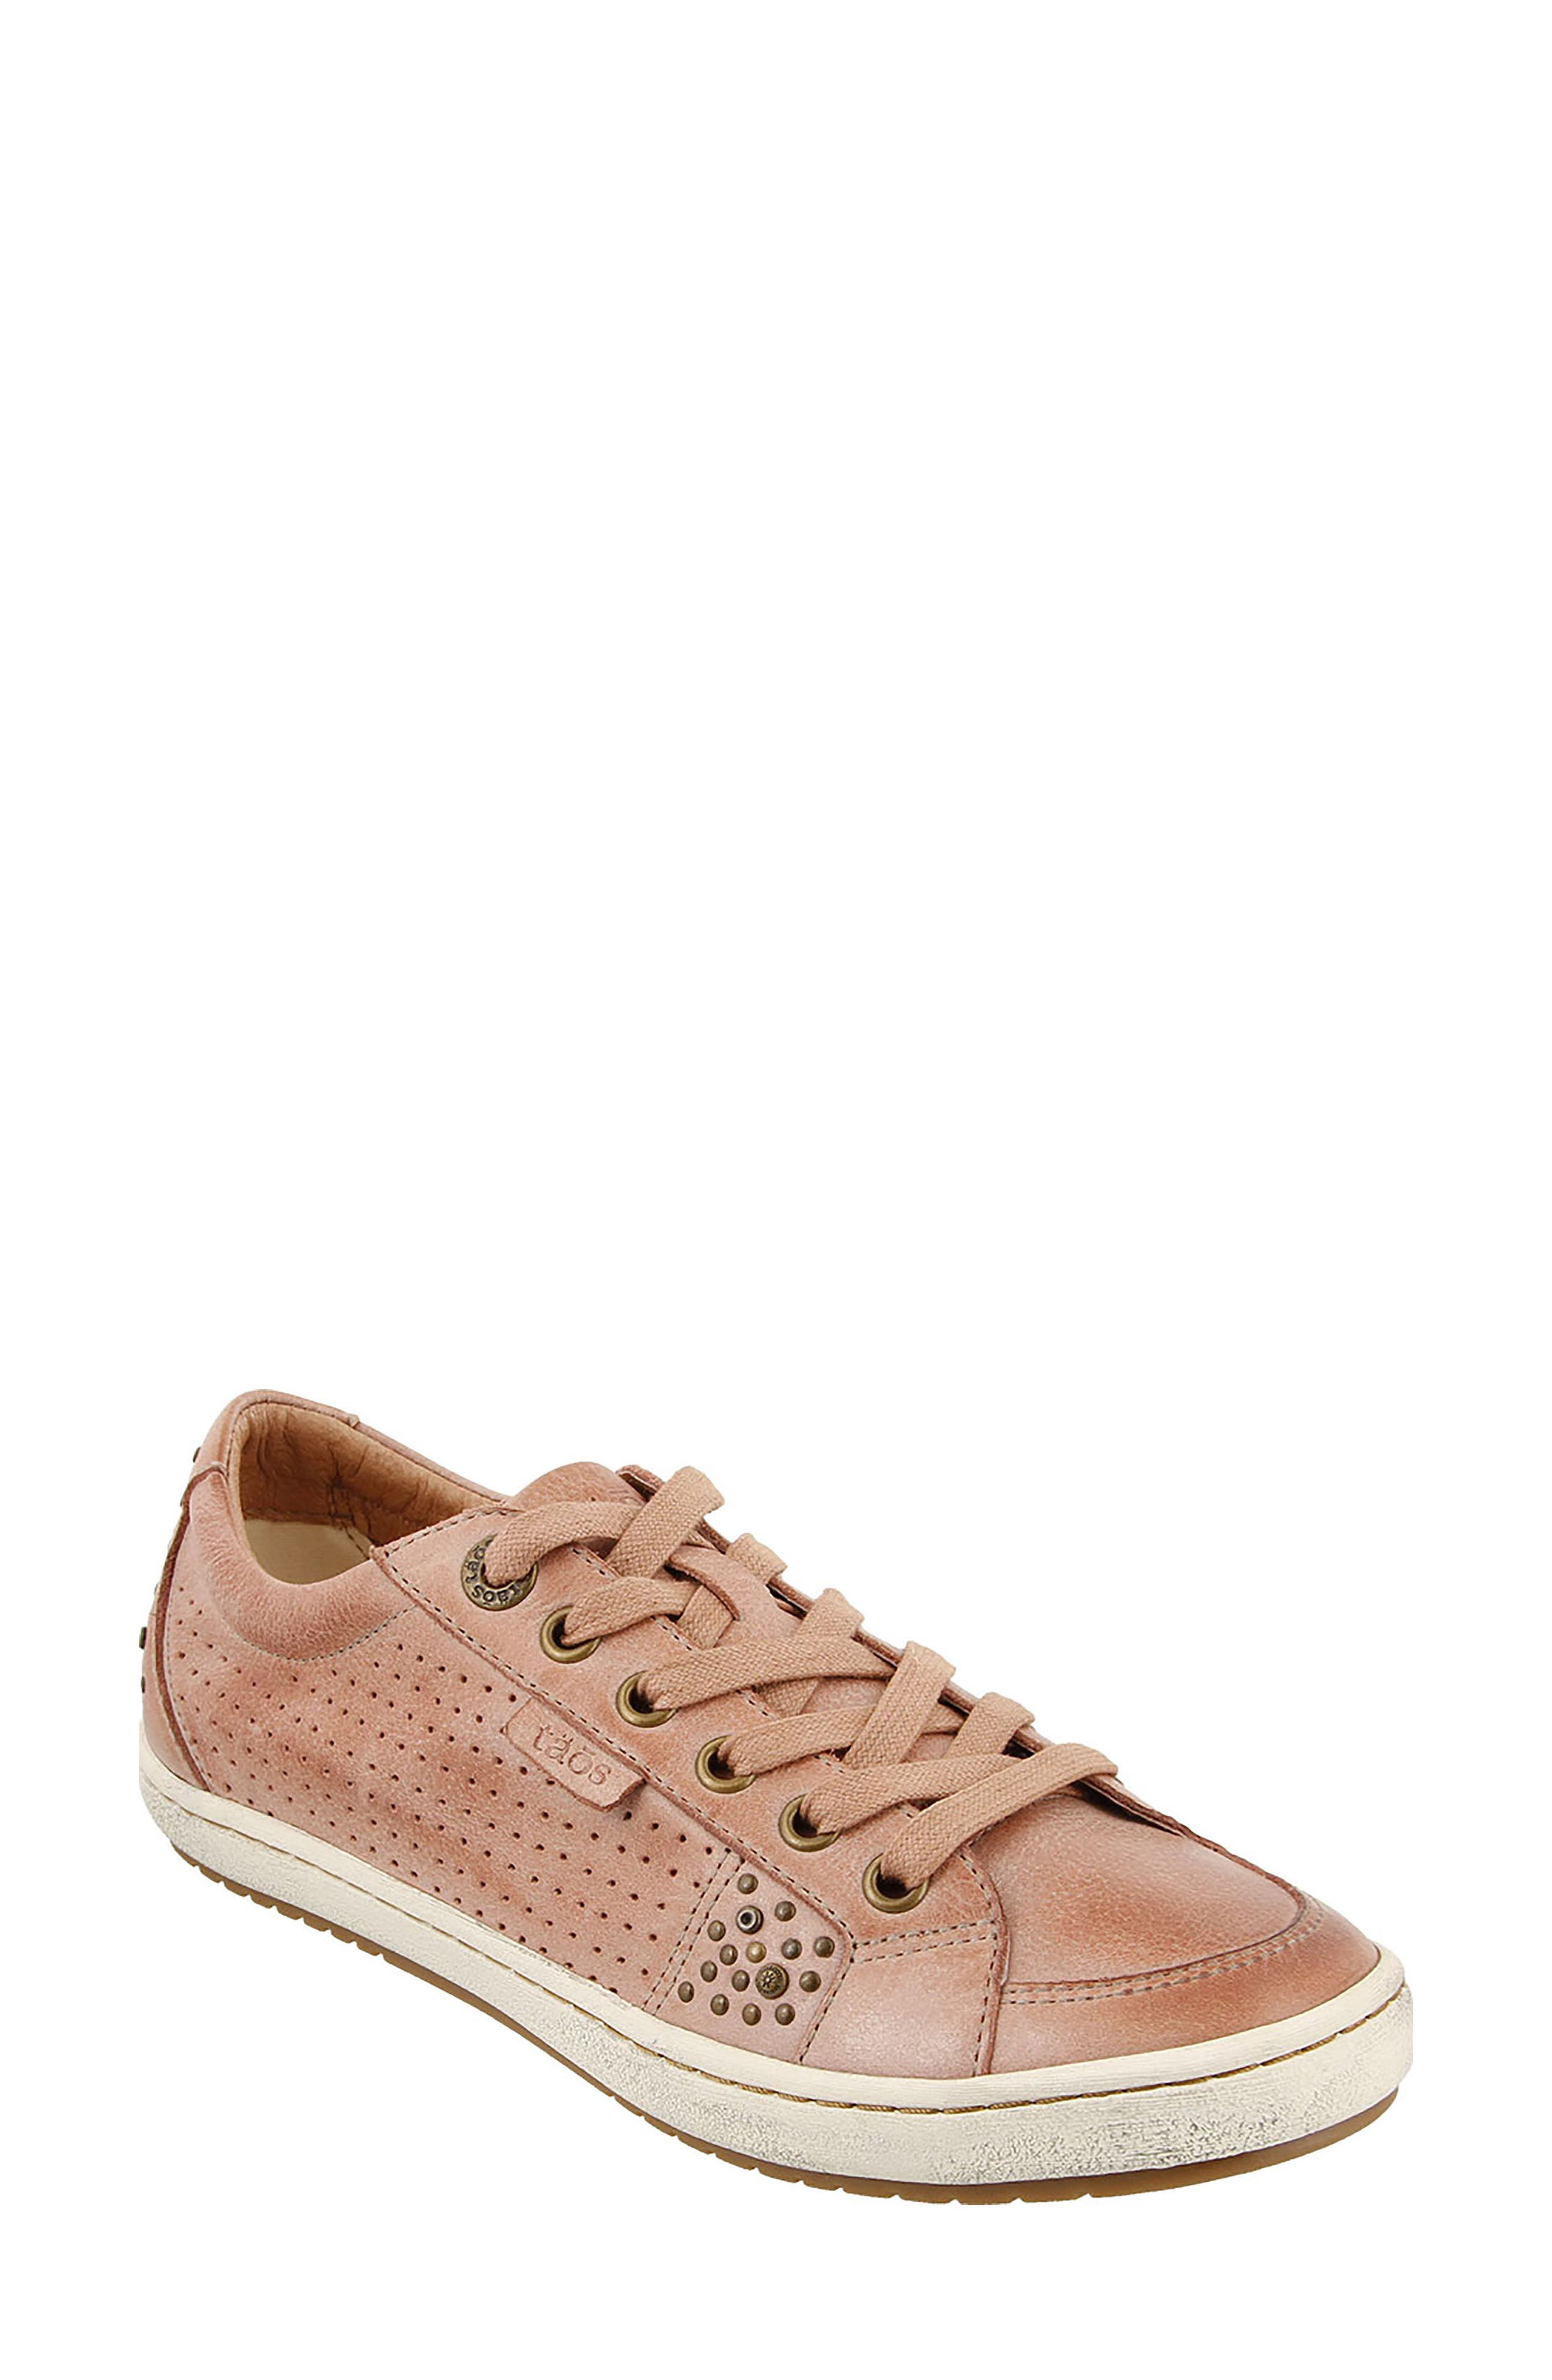 'Freedom' Sneaker,                         Main,                         color, Blush Leather